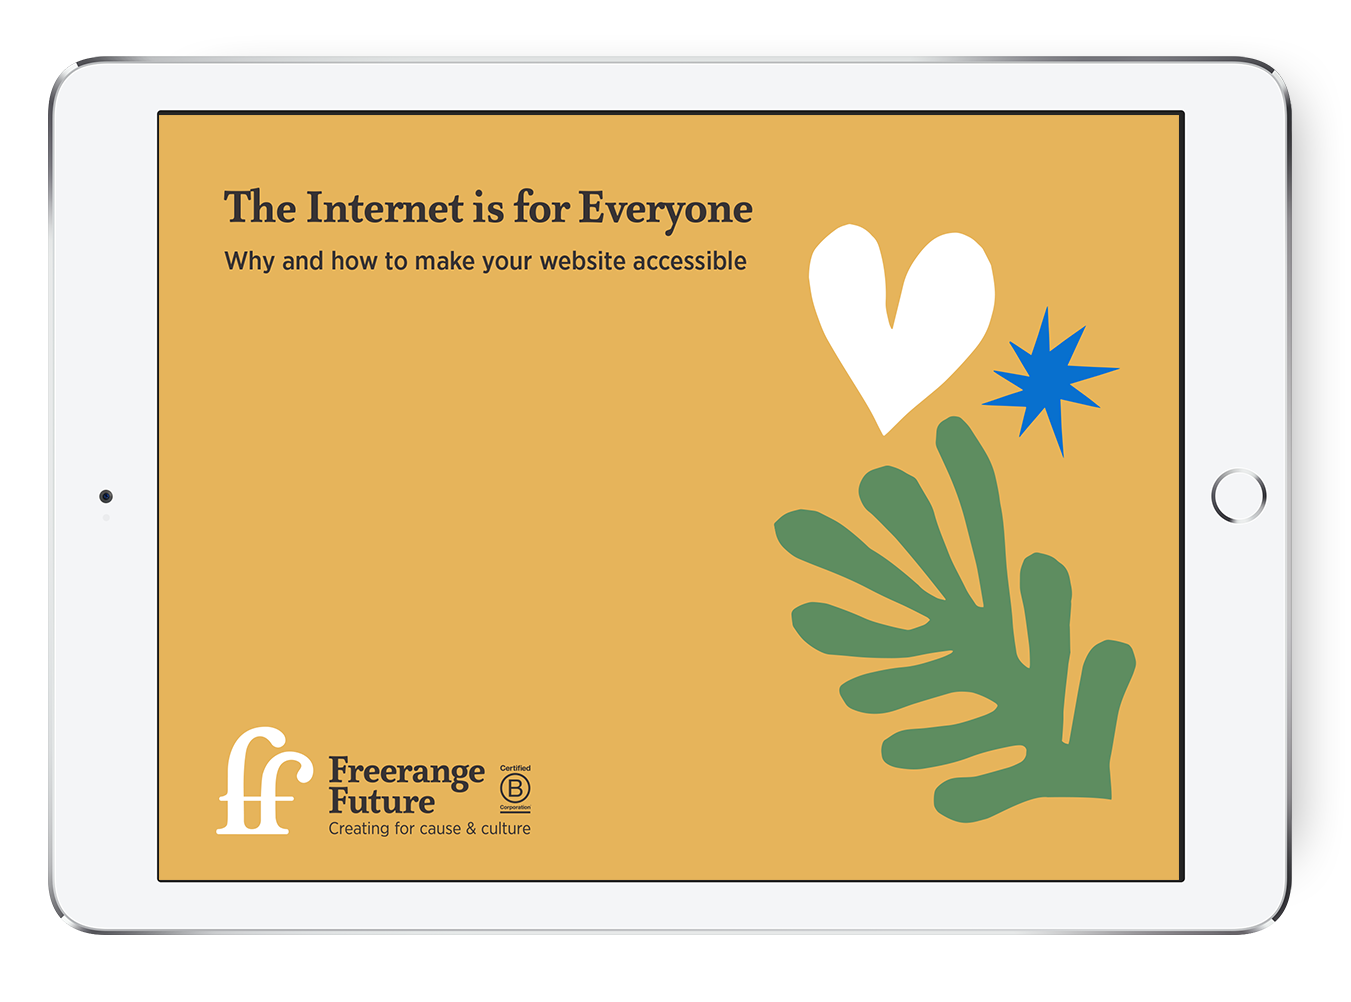 An iPad displaying the front cover of The Internet is for everyone - a yellow background with decorative shapes, the title and the Freerange Future logo